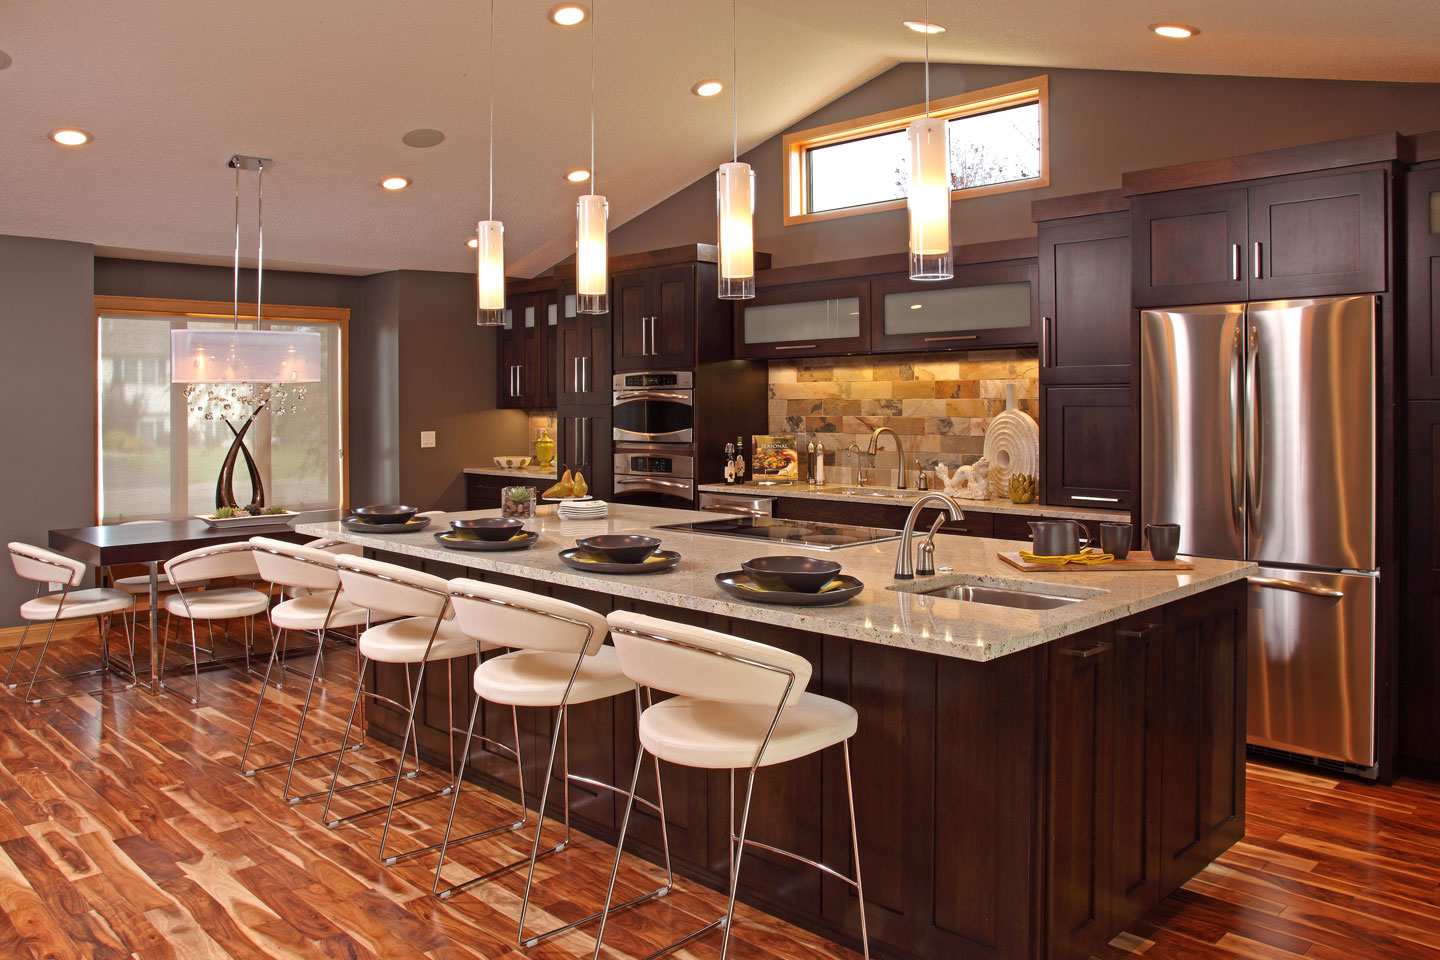 orange county kitchen designers colonial kitchen design Dark Kitchen Cabinets Backsplash Ideas Colonial